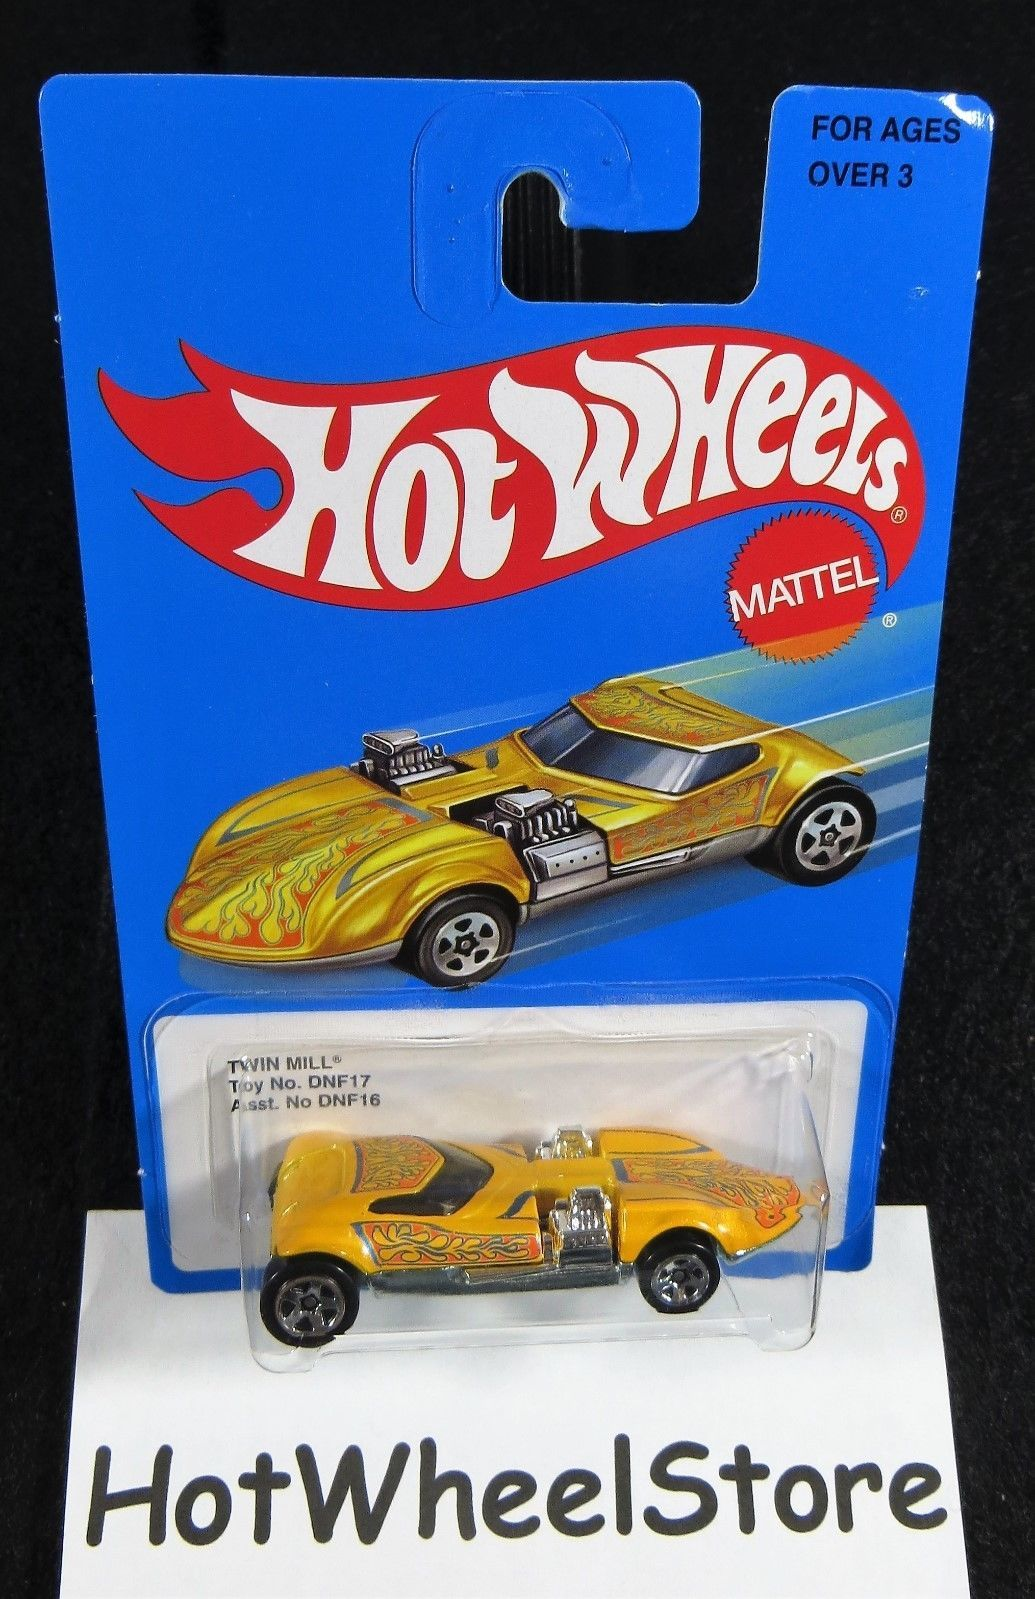 2016 Hot Wheels Twin Mill Target Exclusive And 50 Similar Items Hotwheels 82 Nissan Skyline R30 Silver Retro Series Hw 41